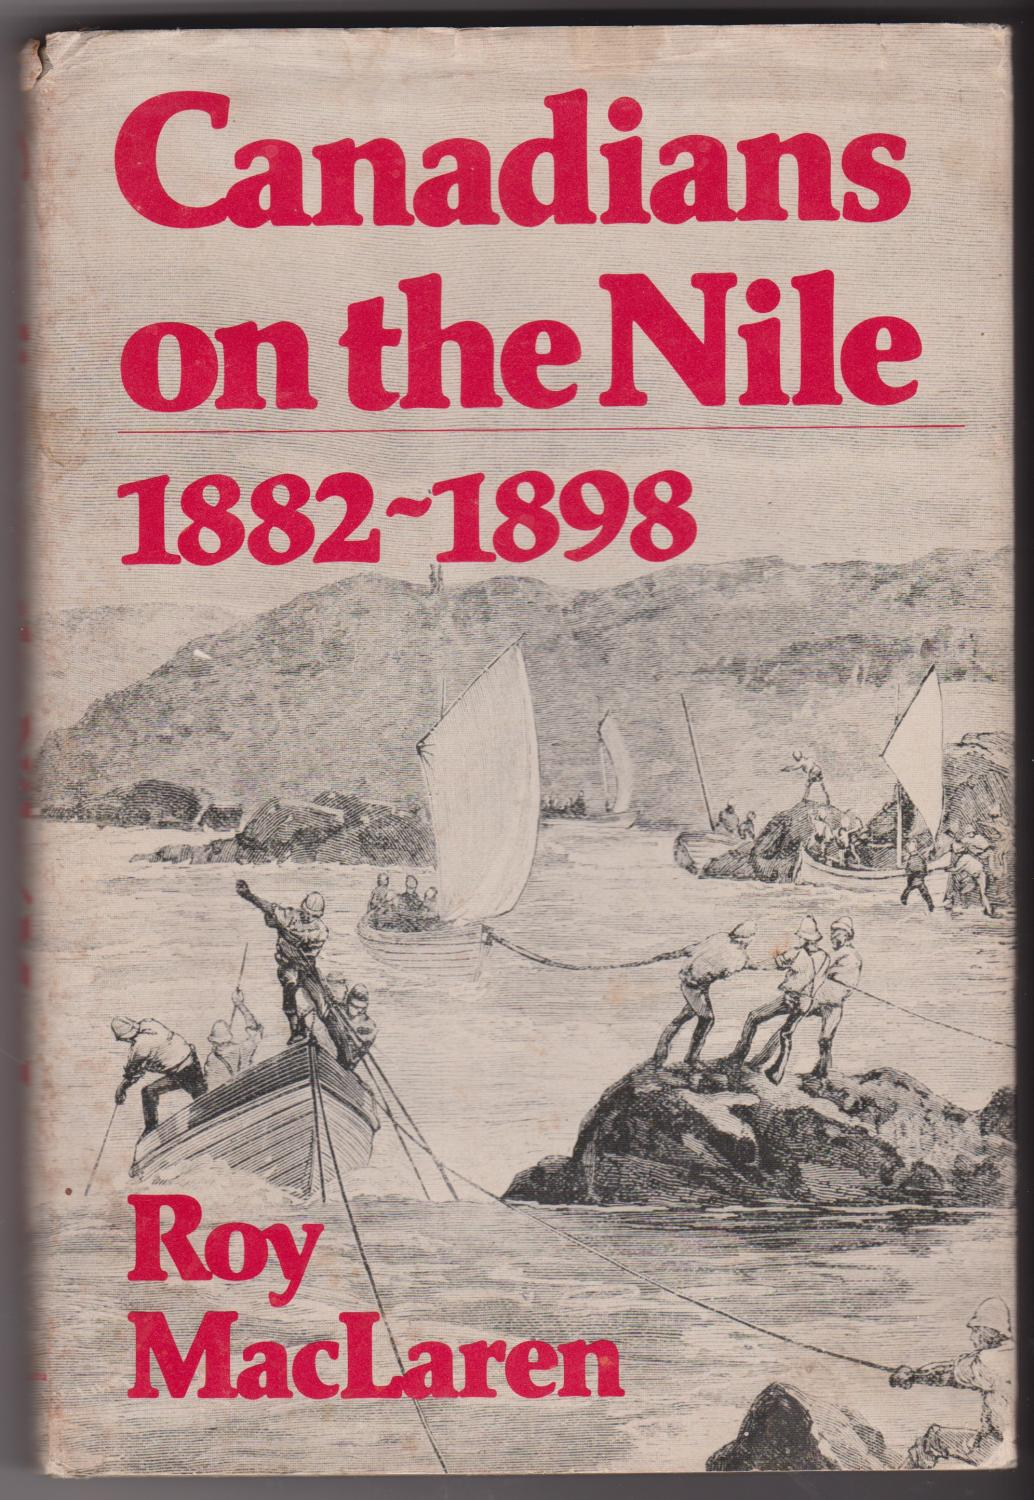 Canadians on the Nile, 1882-1898: Being the adventures of ...